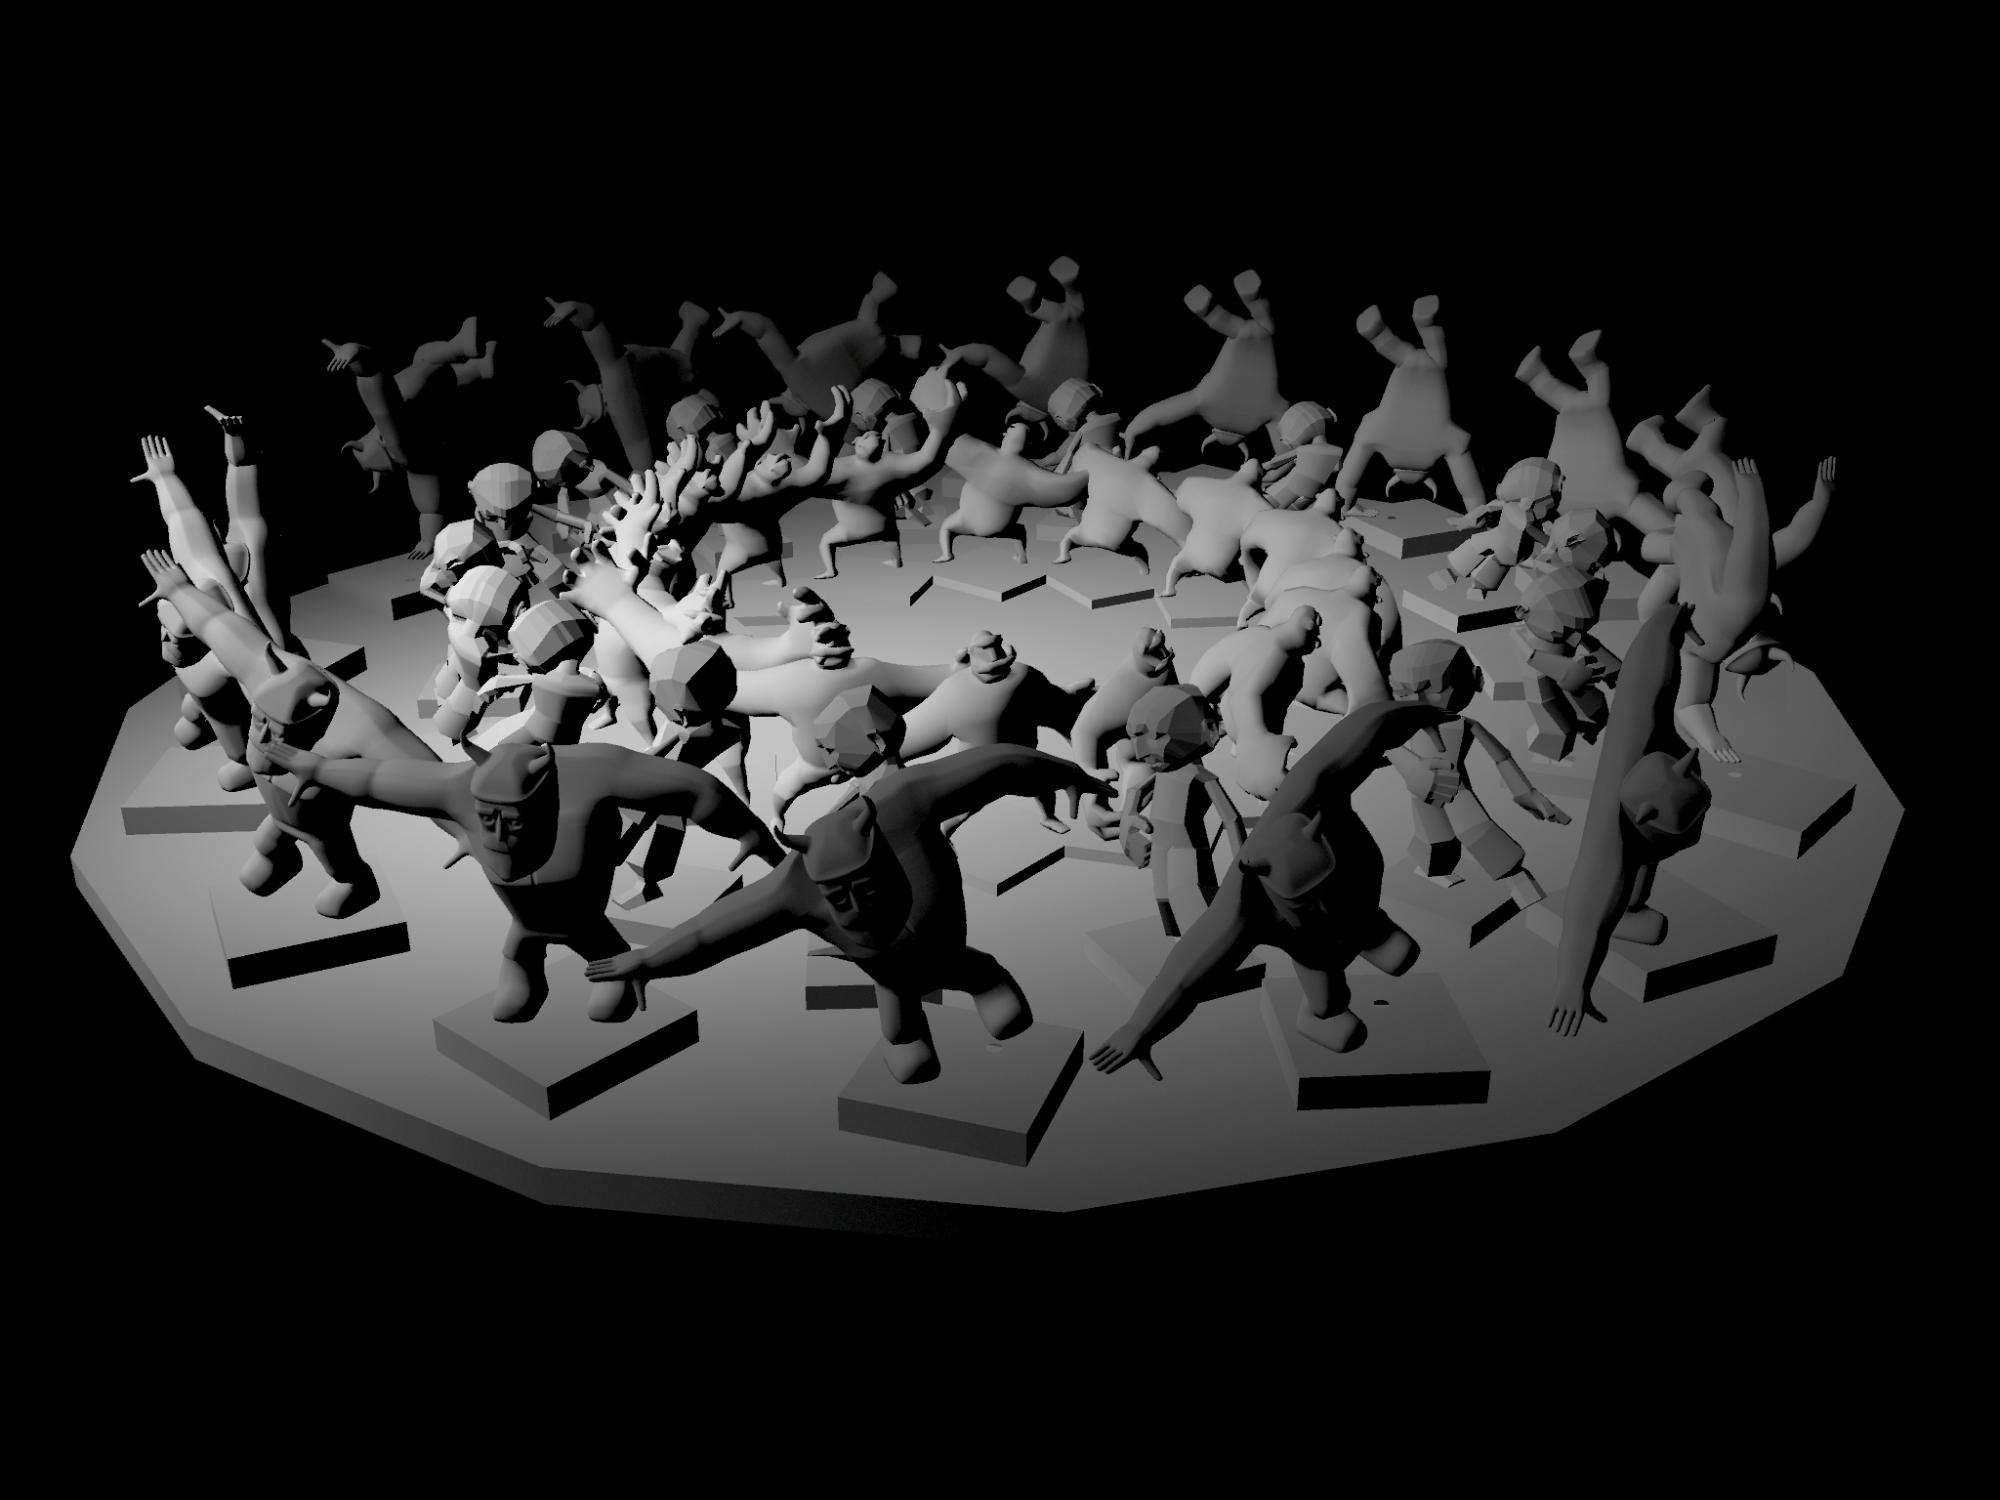 Screen capture of virtual zoetrope with additional character animations from Joe Derrick and Sam Elphick